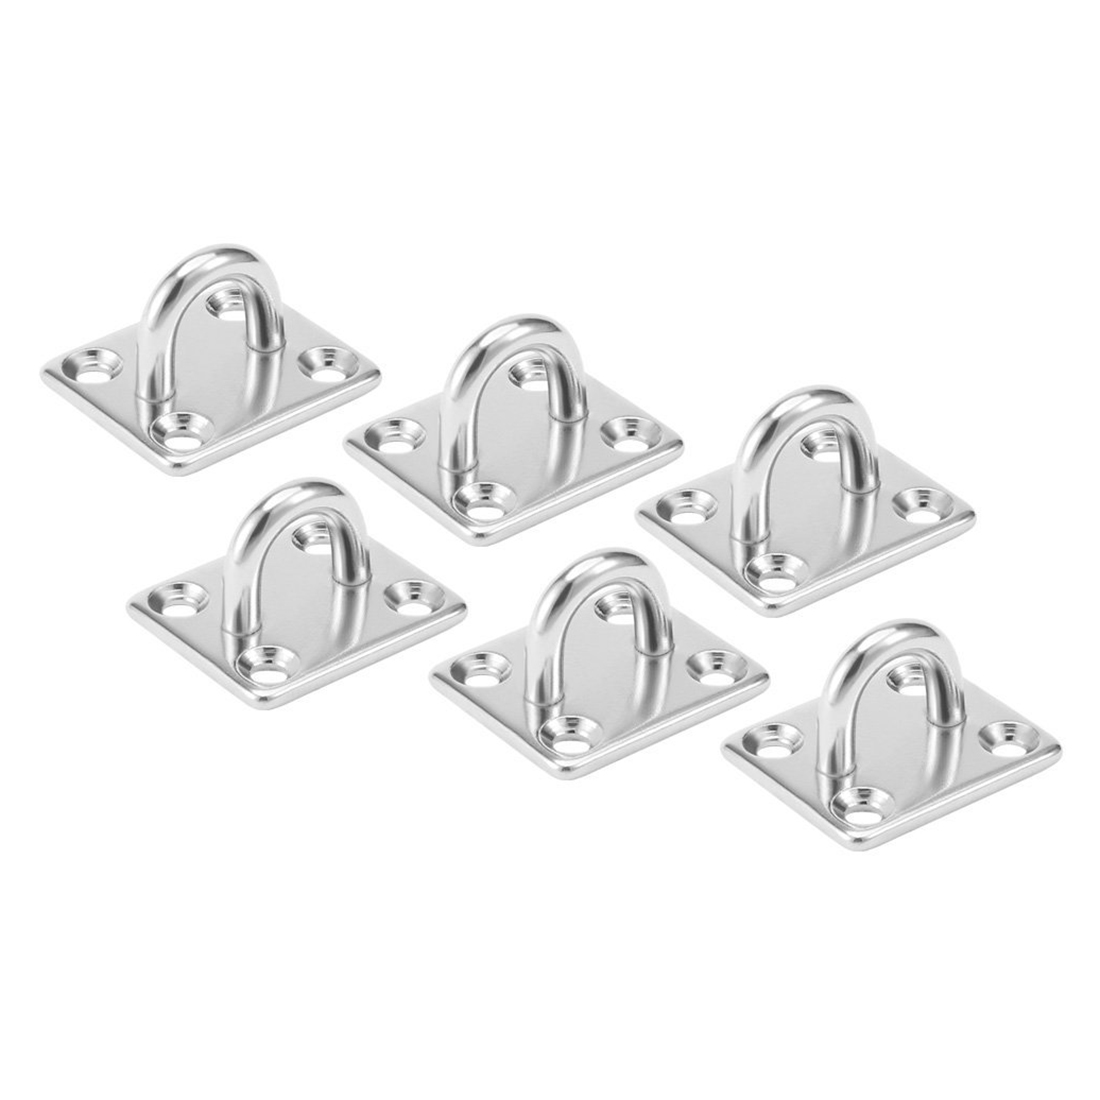 304 Stainless Steel 5mm Thick Ring Square Sail Shade Pad Eye Plate Boat Rigging 6pcs